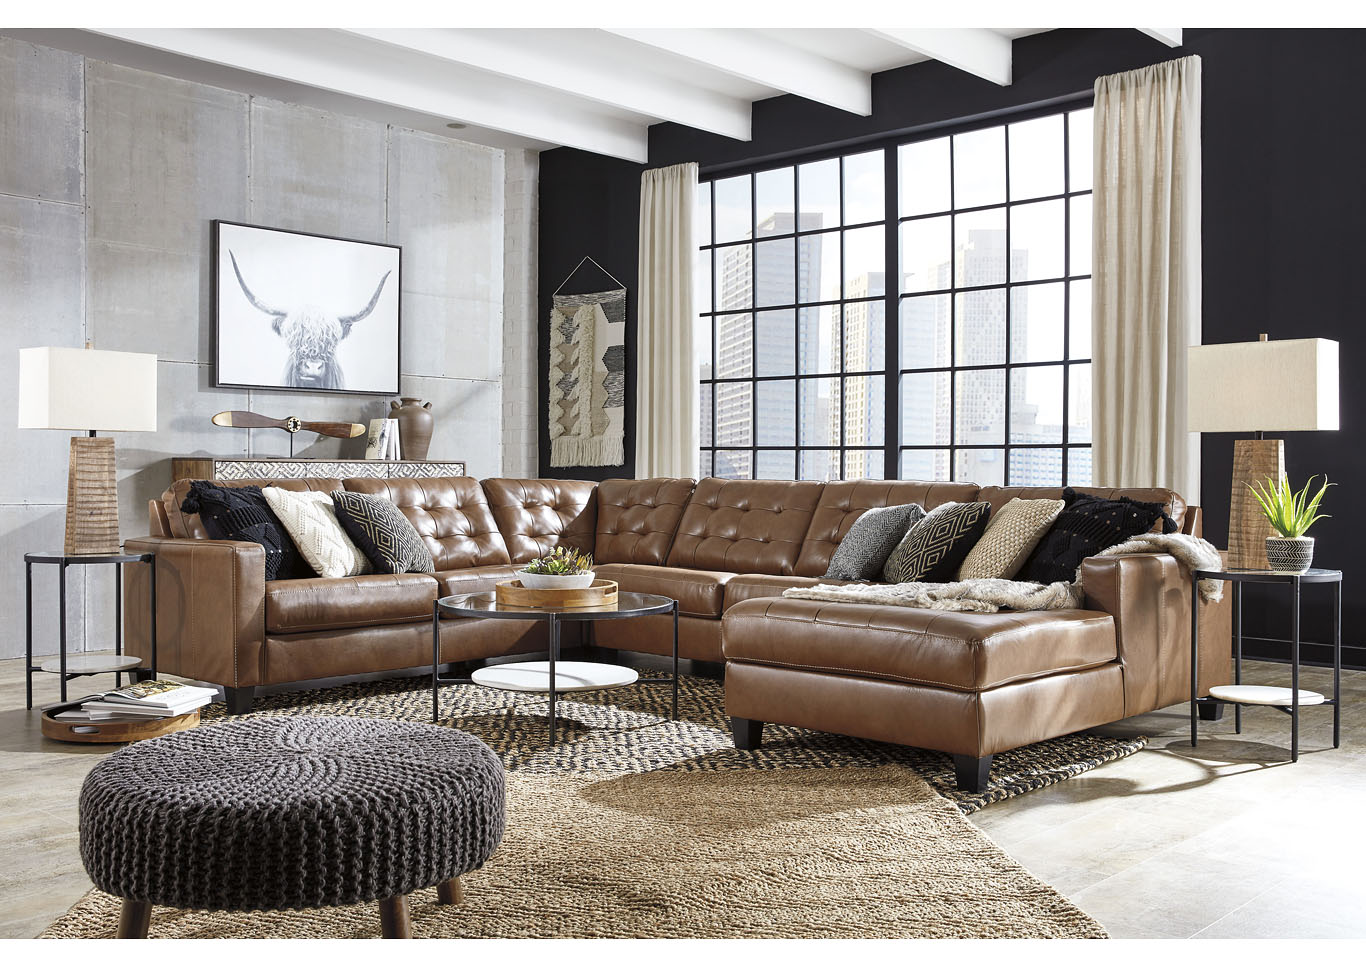 Baskove Auburn Left-Arm Facing Chaise Sectional,Signature Design By Ashley